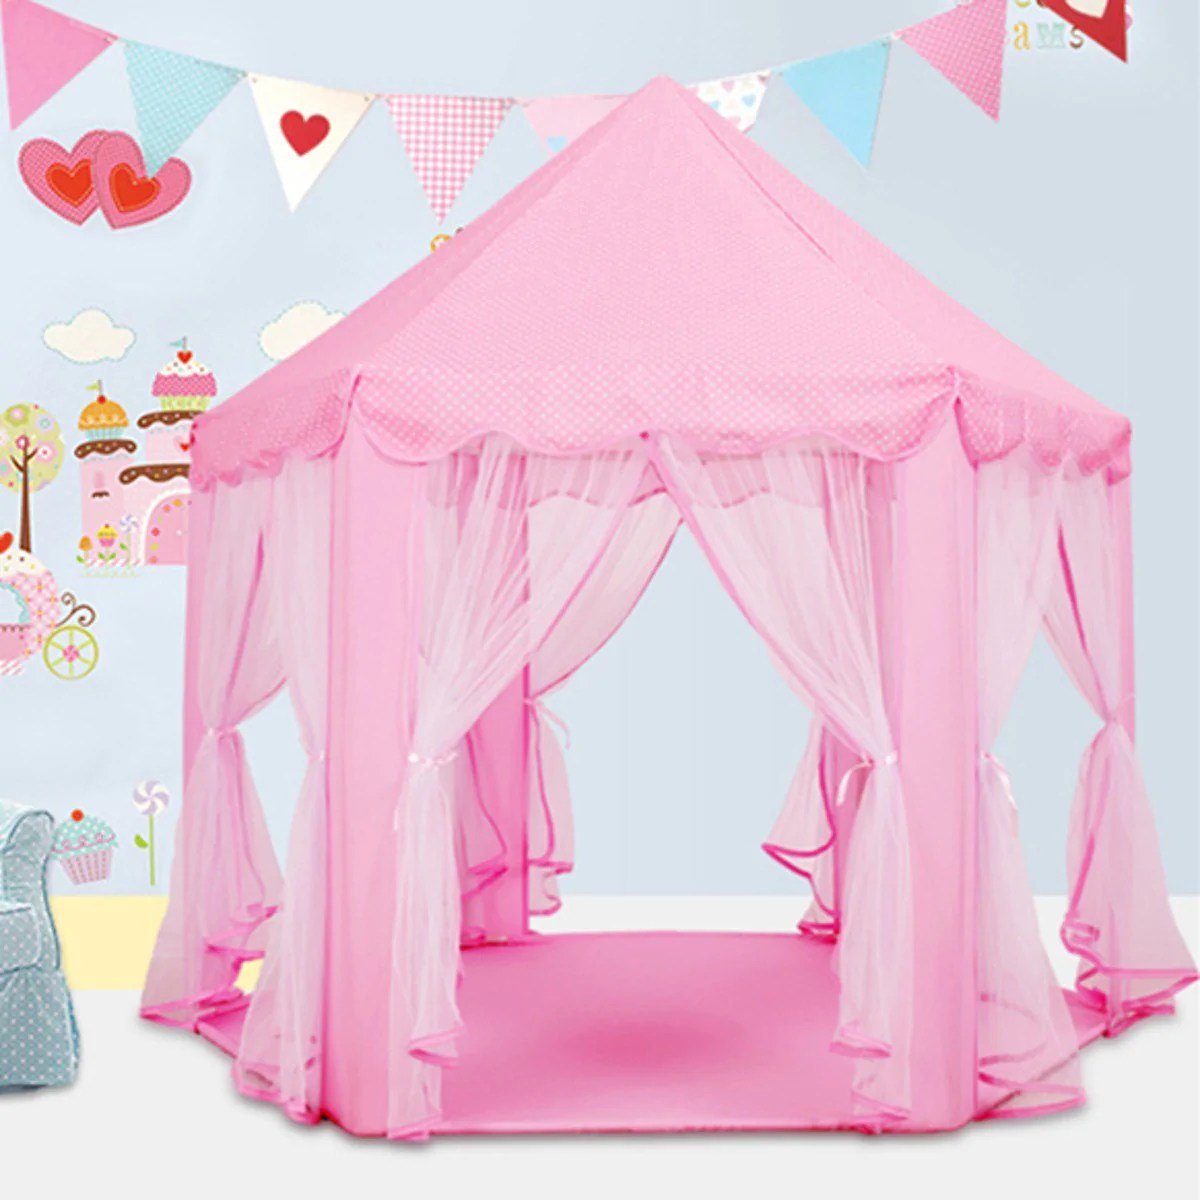 Kids Play Tent Lovely Girls Pink Princess Castle Cute Playhouse Children Kids Play Tent Outdoor Toys Tent For Children Kids